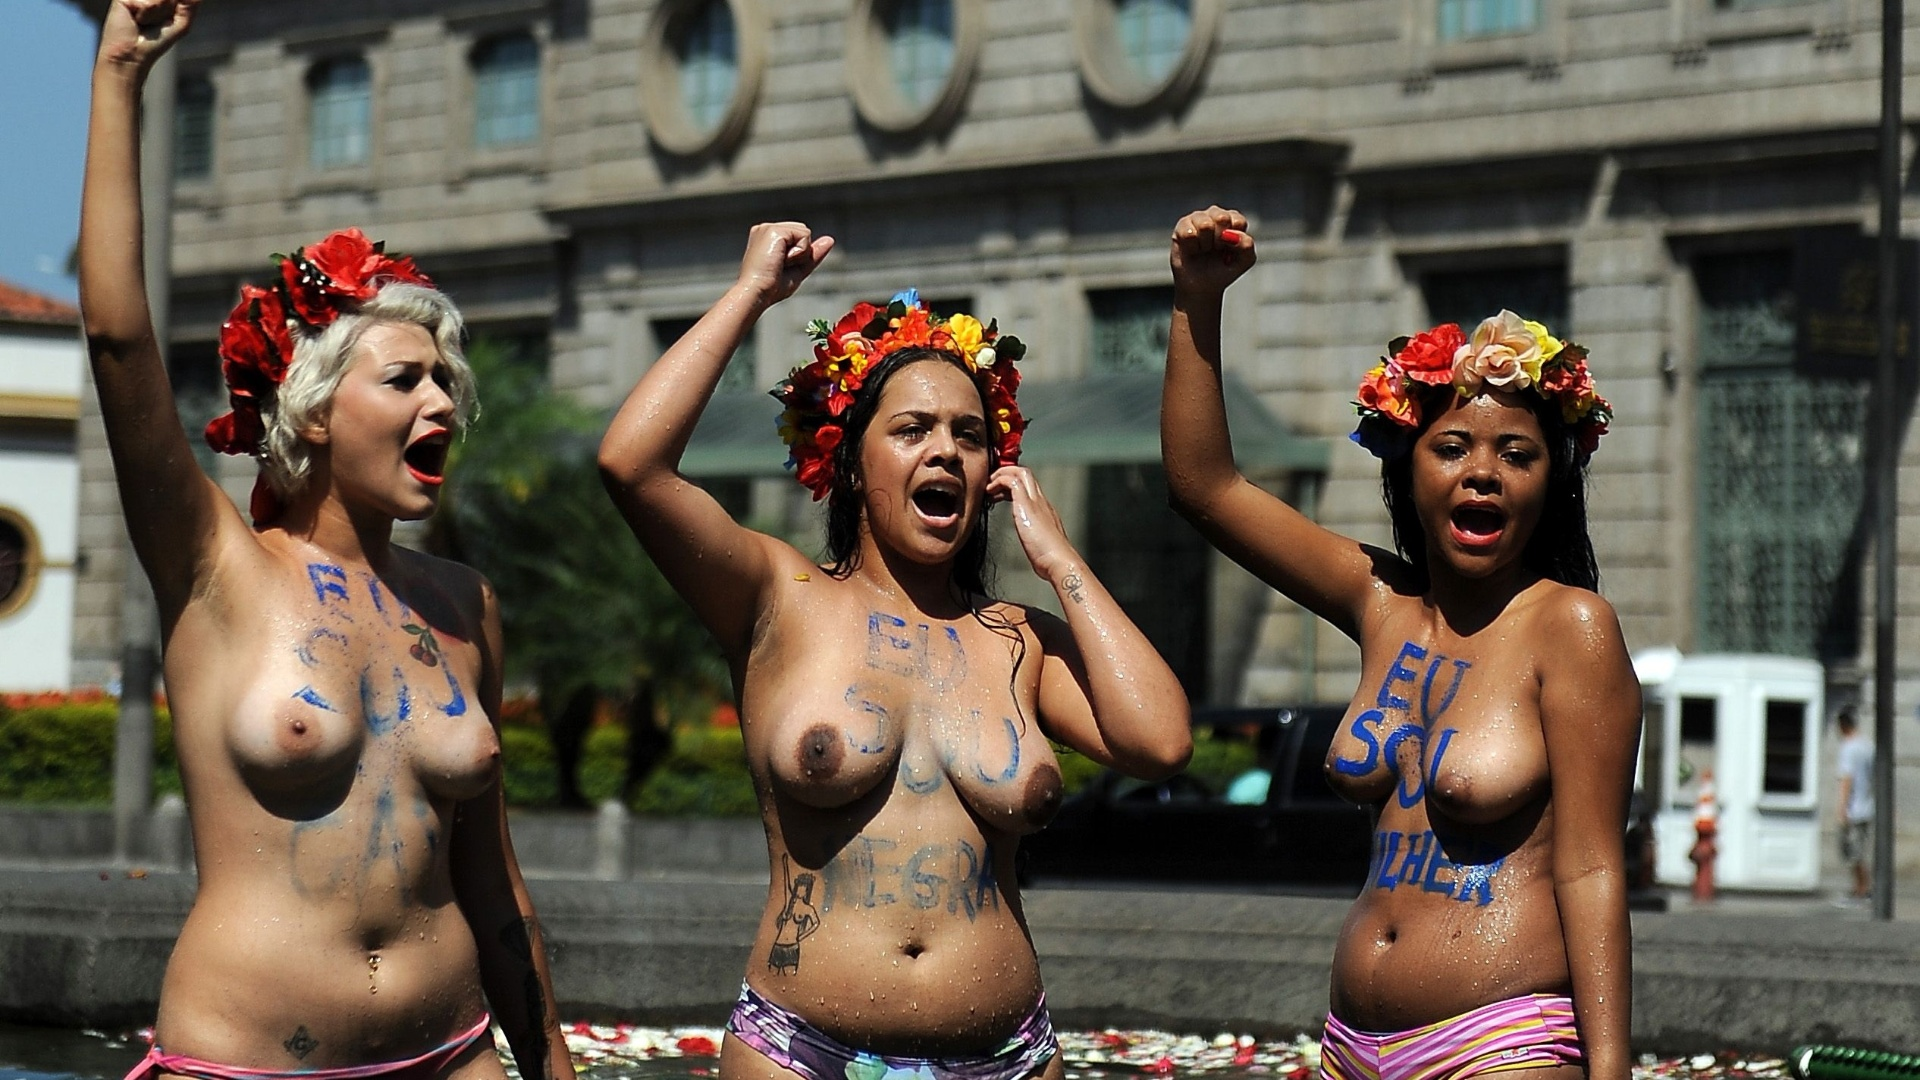 9.mar.2013 - Integrantes do grupo Femen fazem protesto neste sbado (9), em frente  igreja da Candelria, no centro do Rio de Janeiro, contra a homofobia